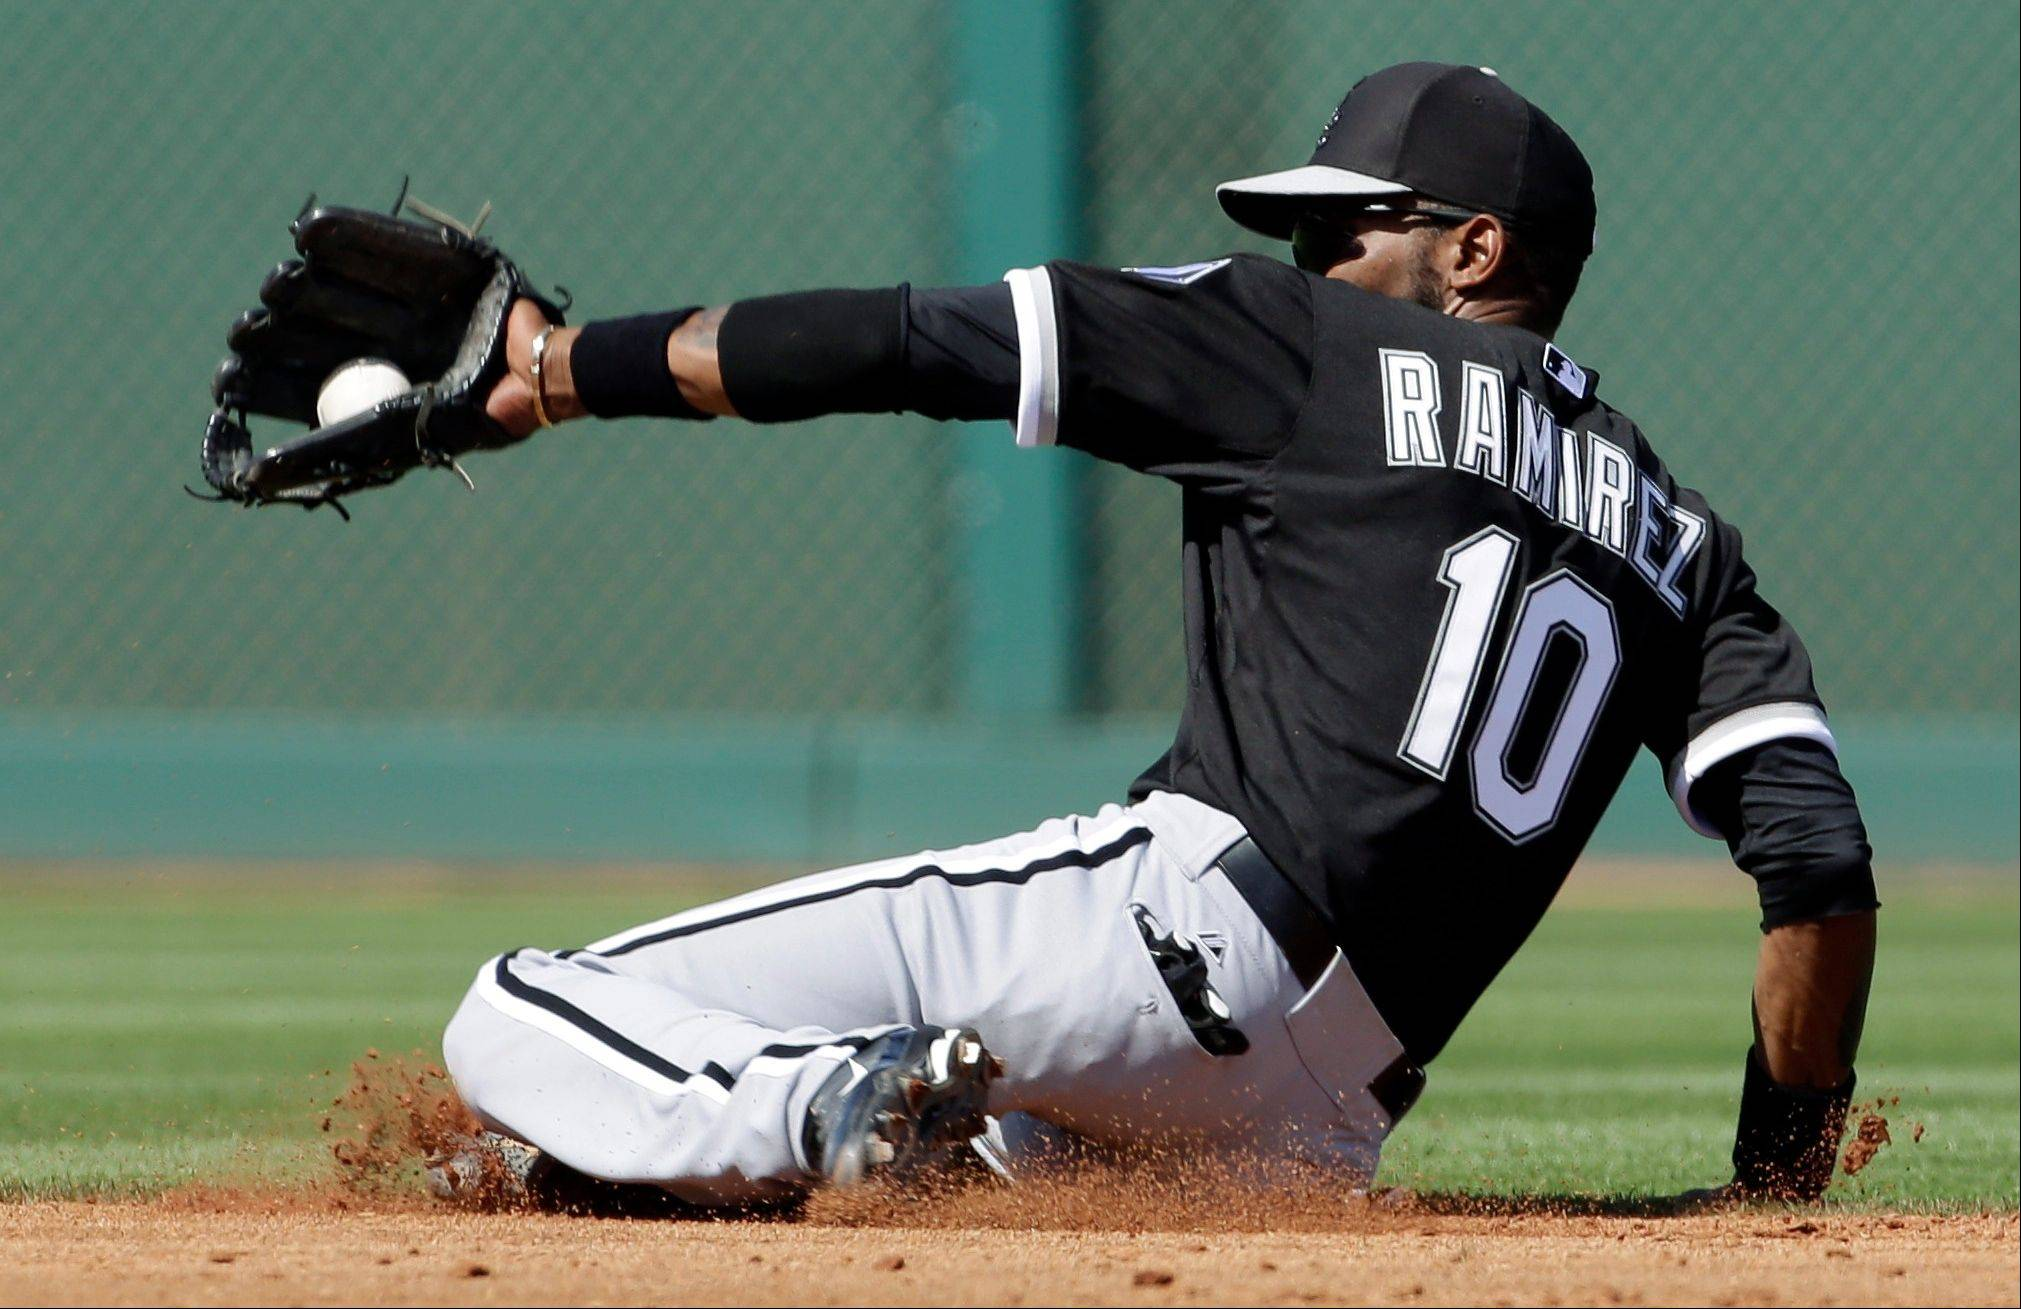 Alexei Ramirez makes a sliding stop on a ground ball by Cincinnati's Devin Mesoraco on March 19 in a spring-training game. With defenders like Ramirez, Jeff Keppinger and Gordon Beckham, the White Sox figure to have another strong team defensively in 2013.